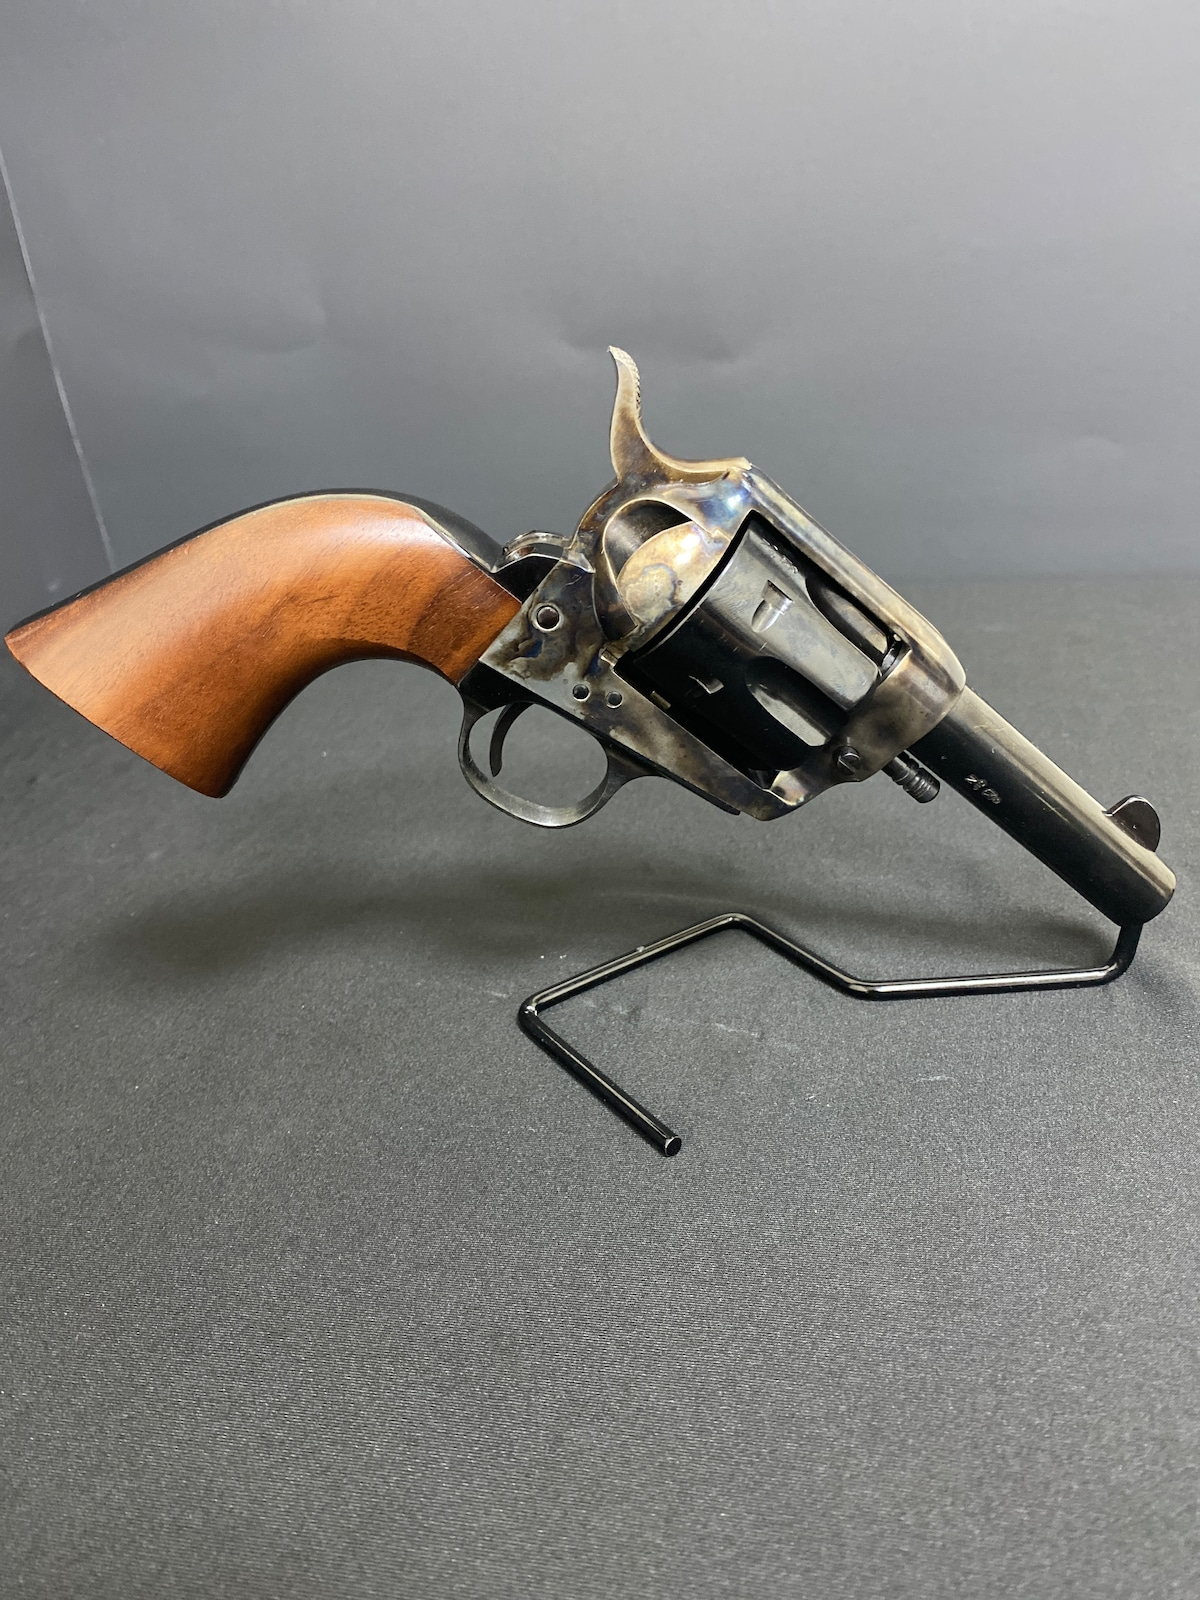 GREAT WESTERN ARMS CO. 1873 SHERIFF